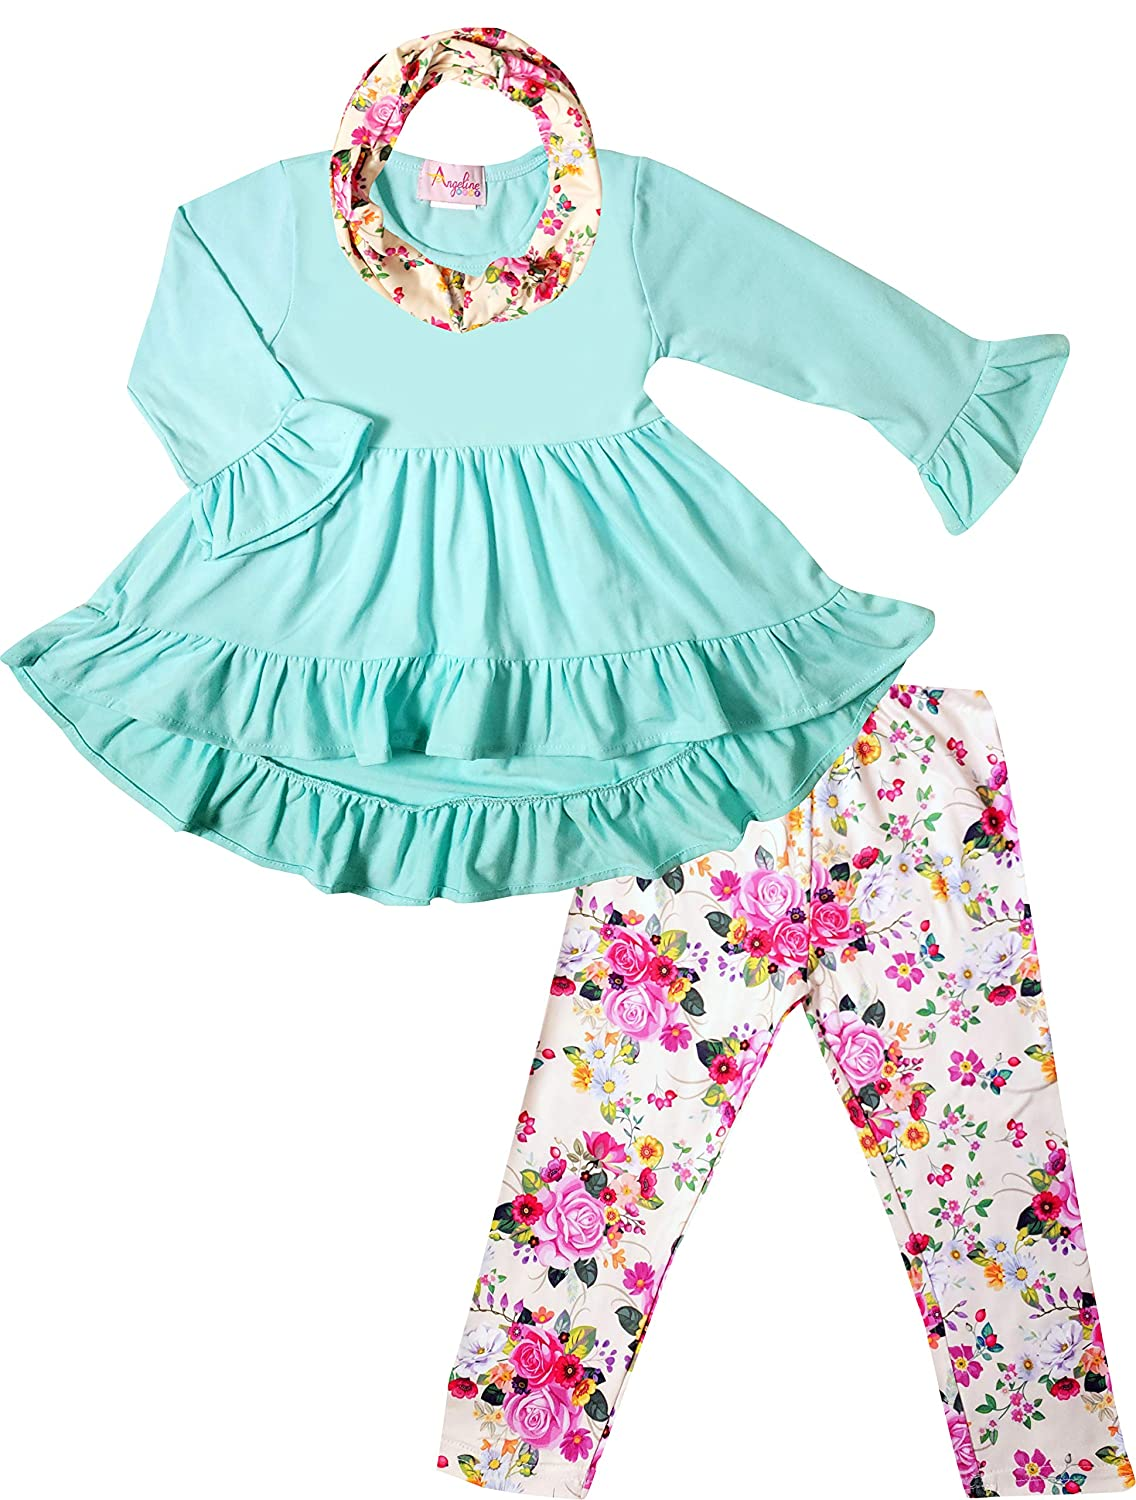 Unique Boutique Designs /& Quality Toddler Little Girls Spring Colors Easter Outfits Top Leggings Scarf Set